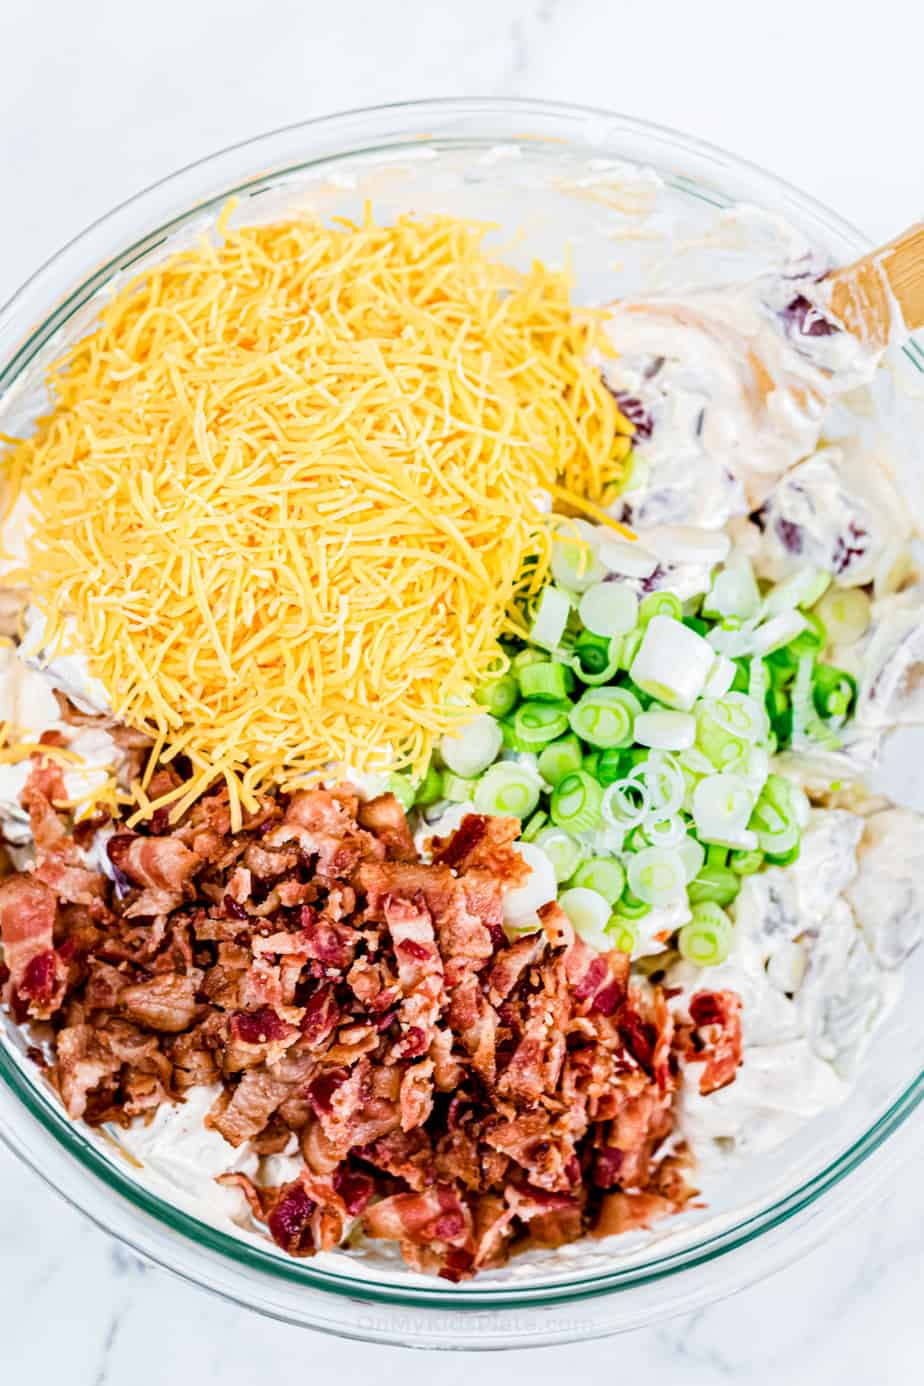 Cheese, bacon and green onions being mixed into potatoes cover in dressing in a bowl.